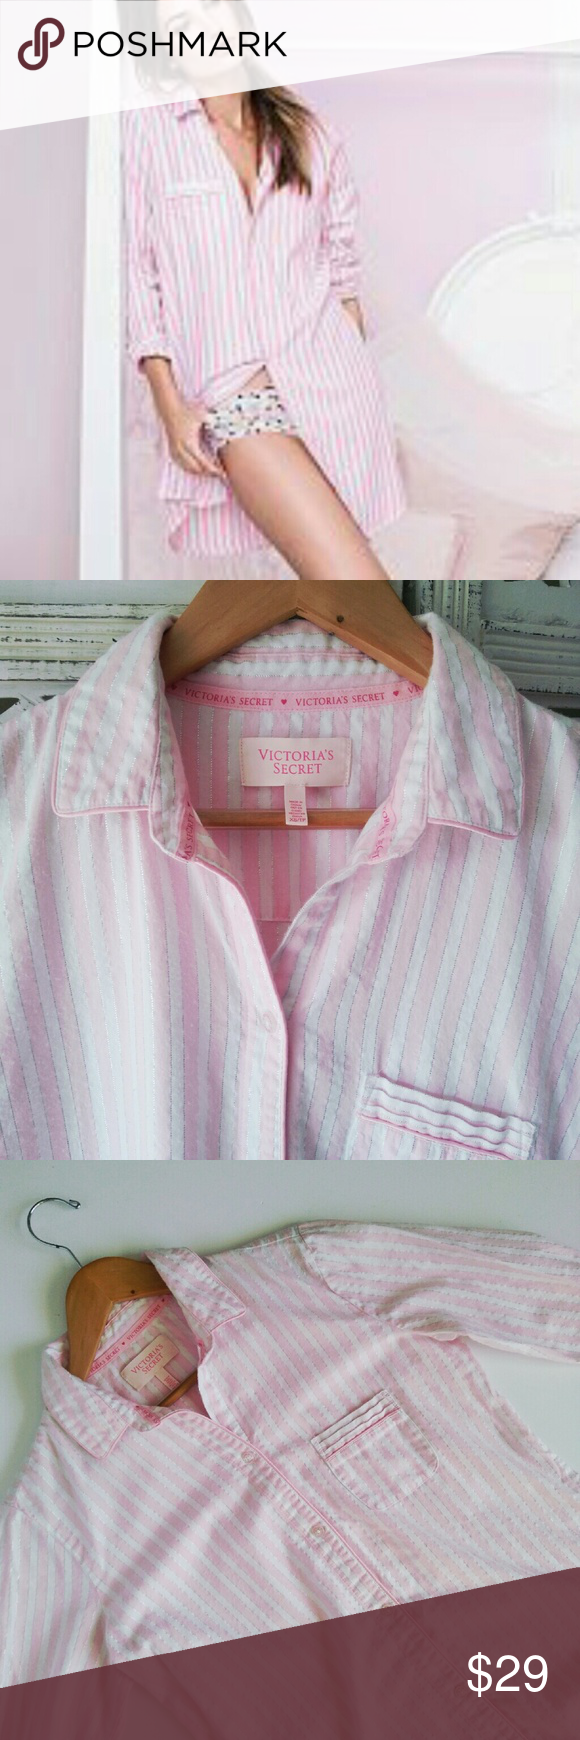 56bf9c3d5de13 Victoria's Secret | flannel sleep shirt Victoria's Secret flannel ...